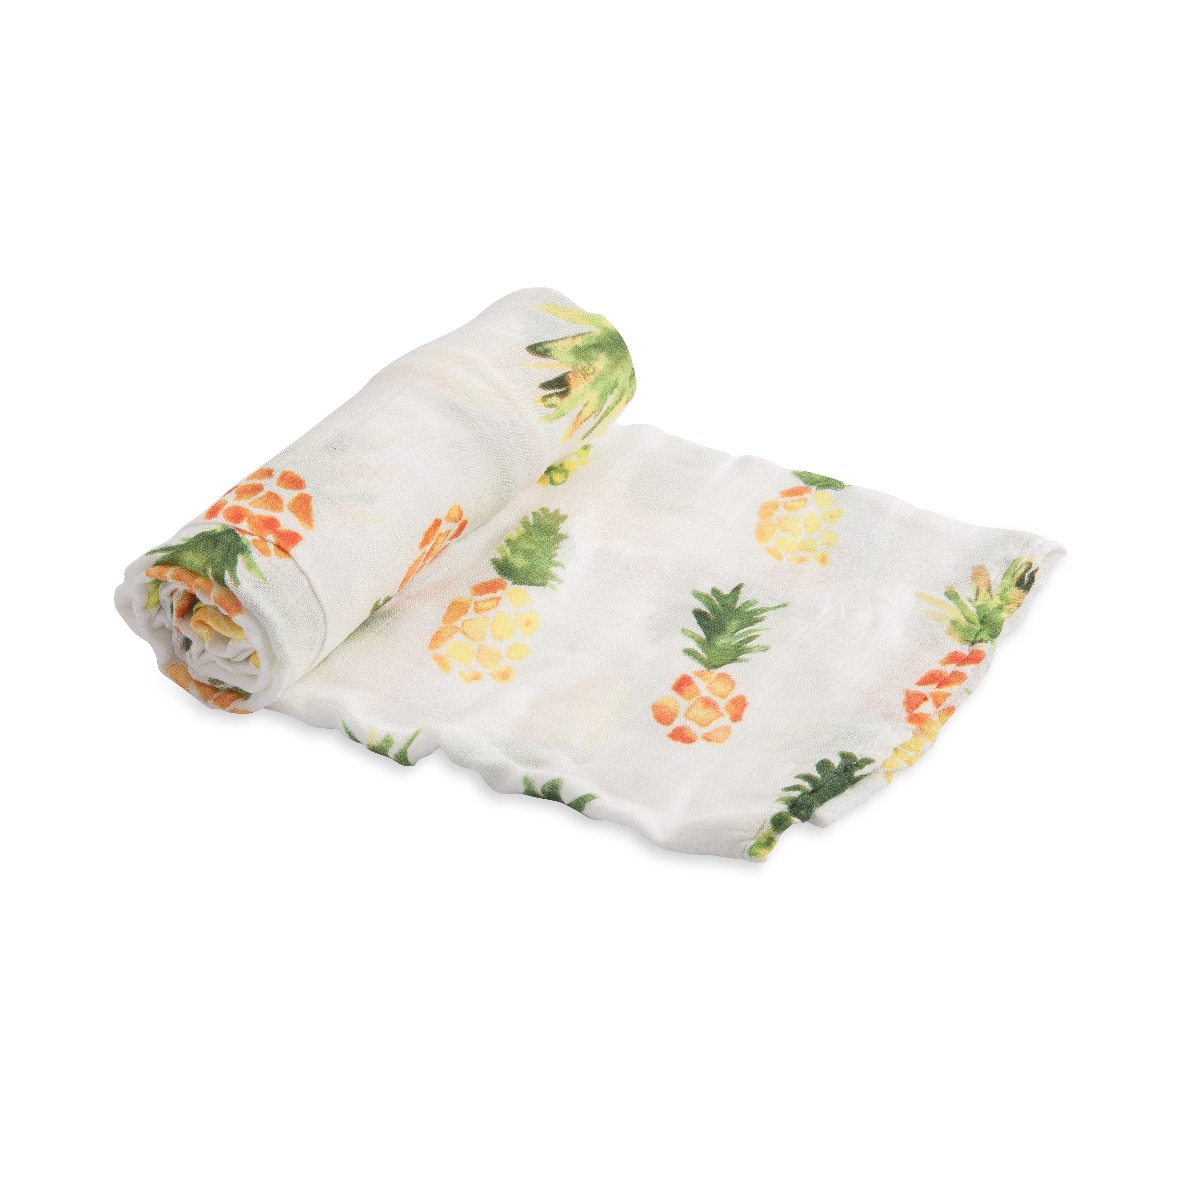 Llittle Unicorn Deluxe Swaddle Pineapple